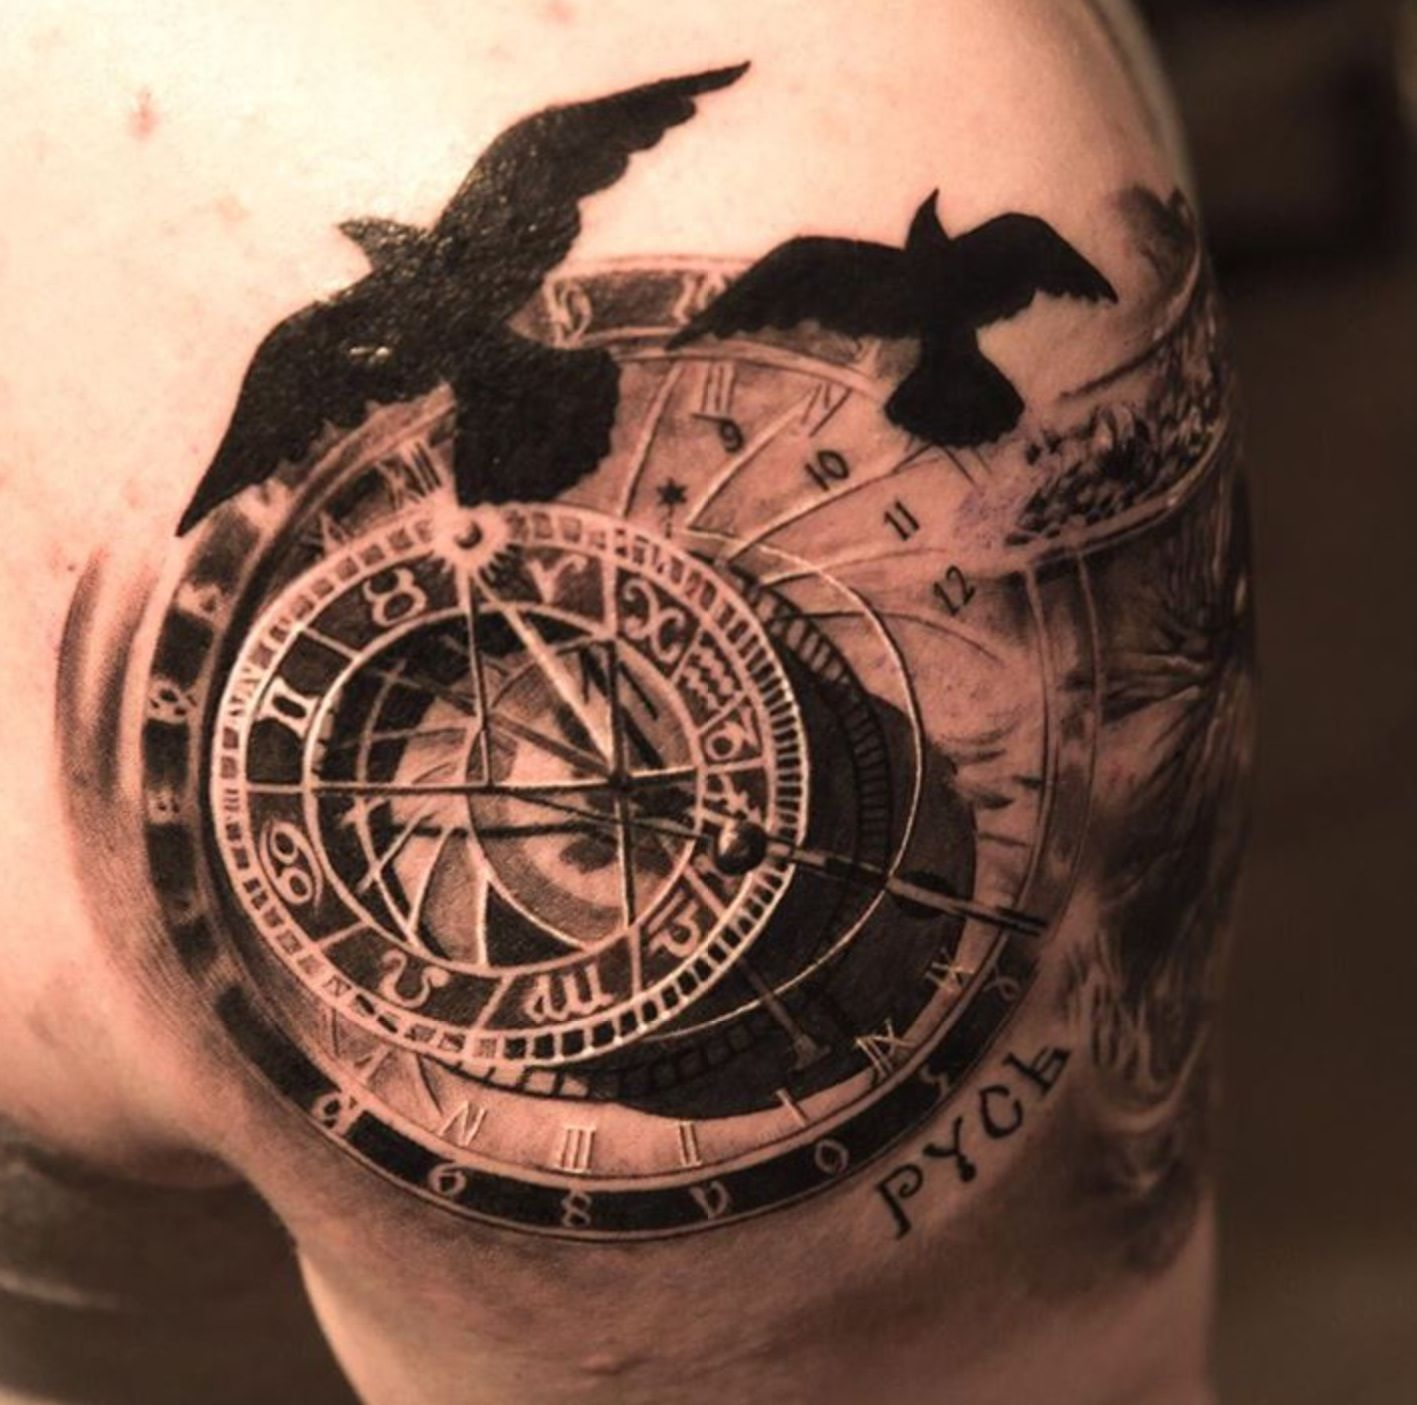 18+ Awesome Compass clock tattoo meaning image ideas